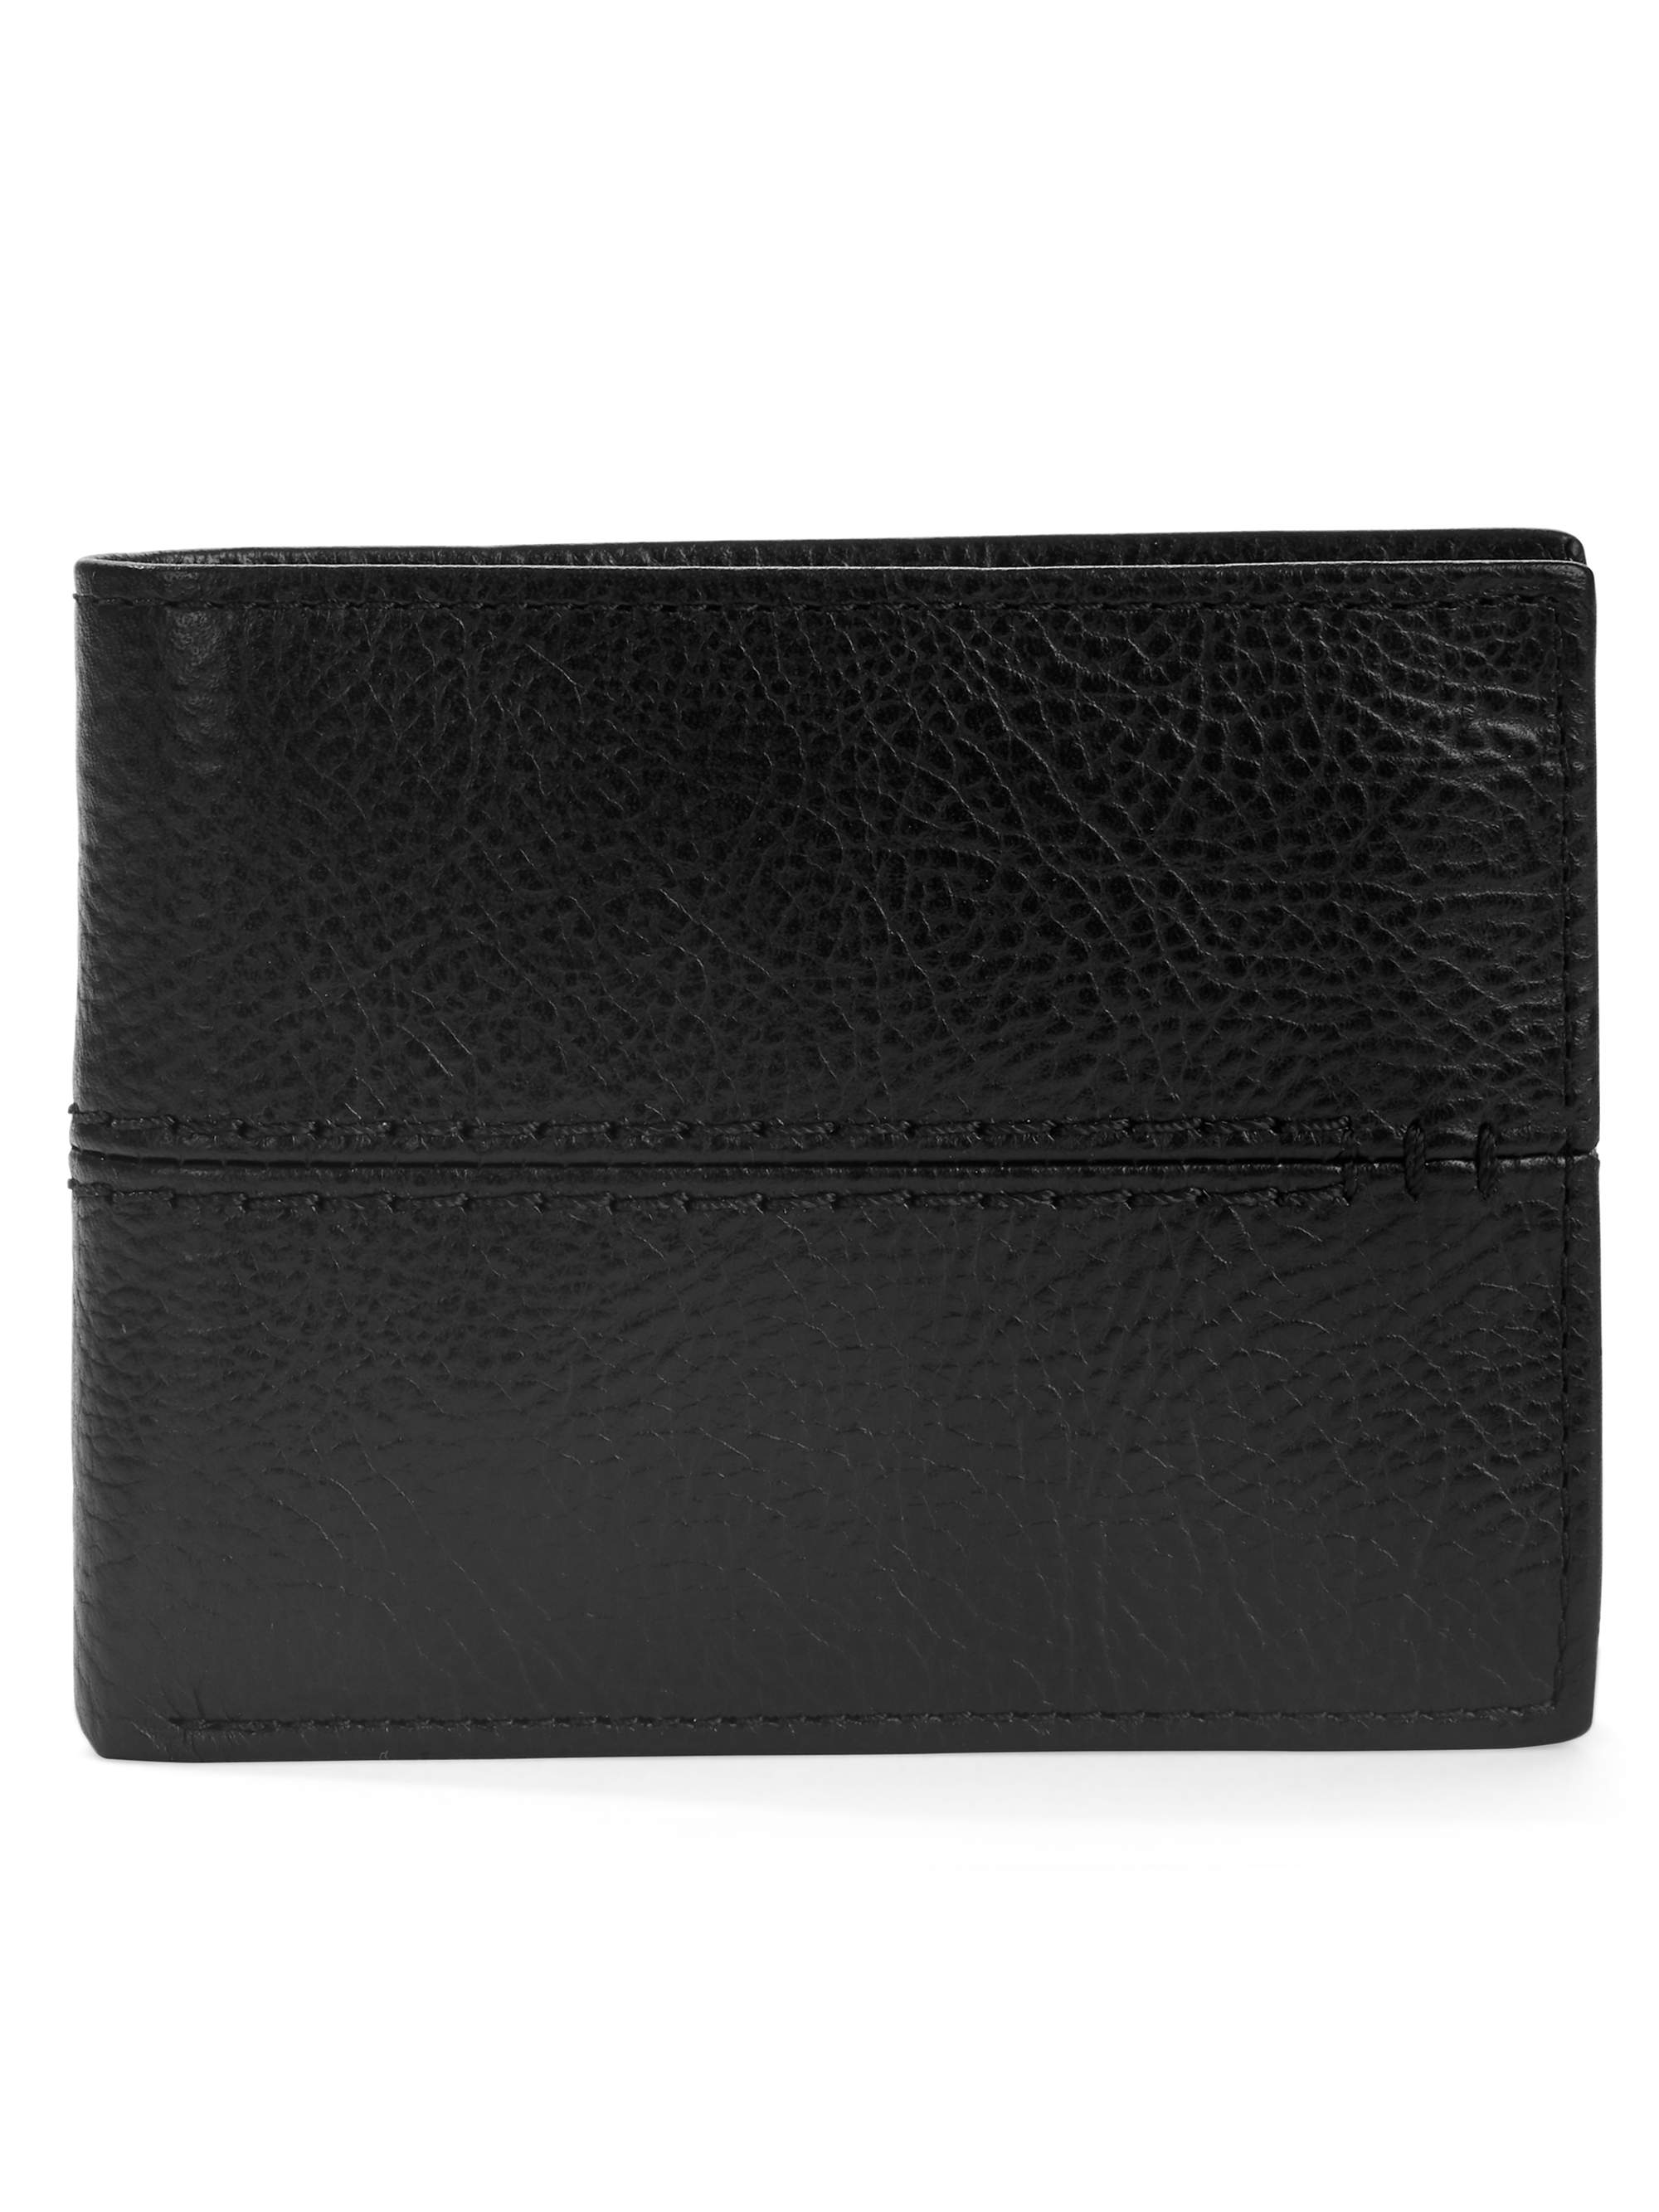 RELIC by Fossil Channel Traveler Wallet